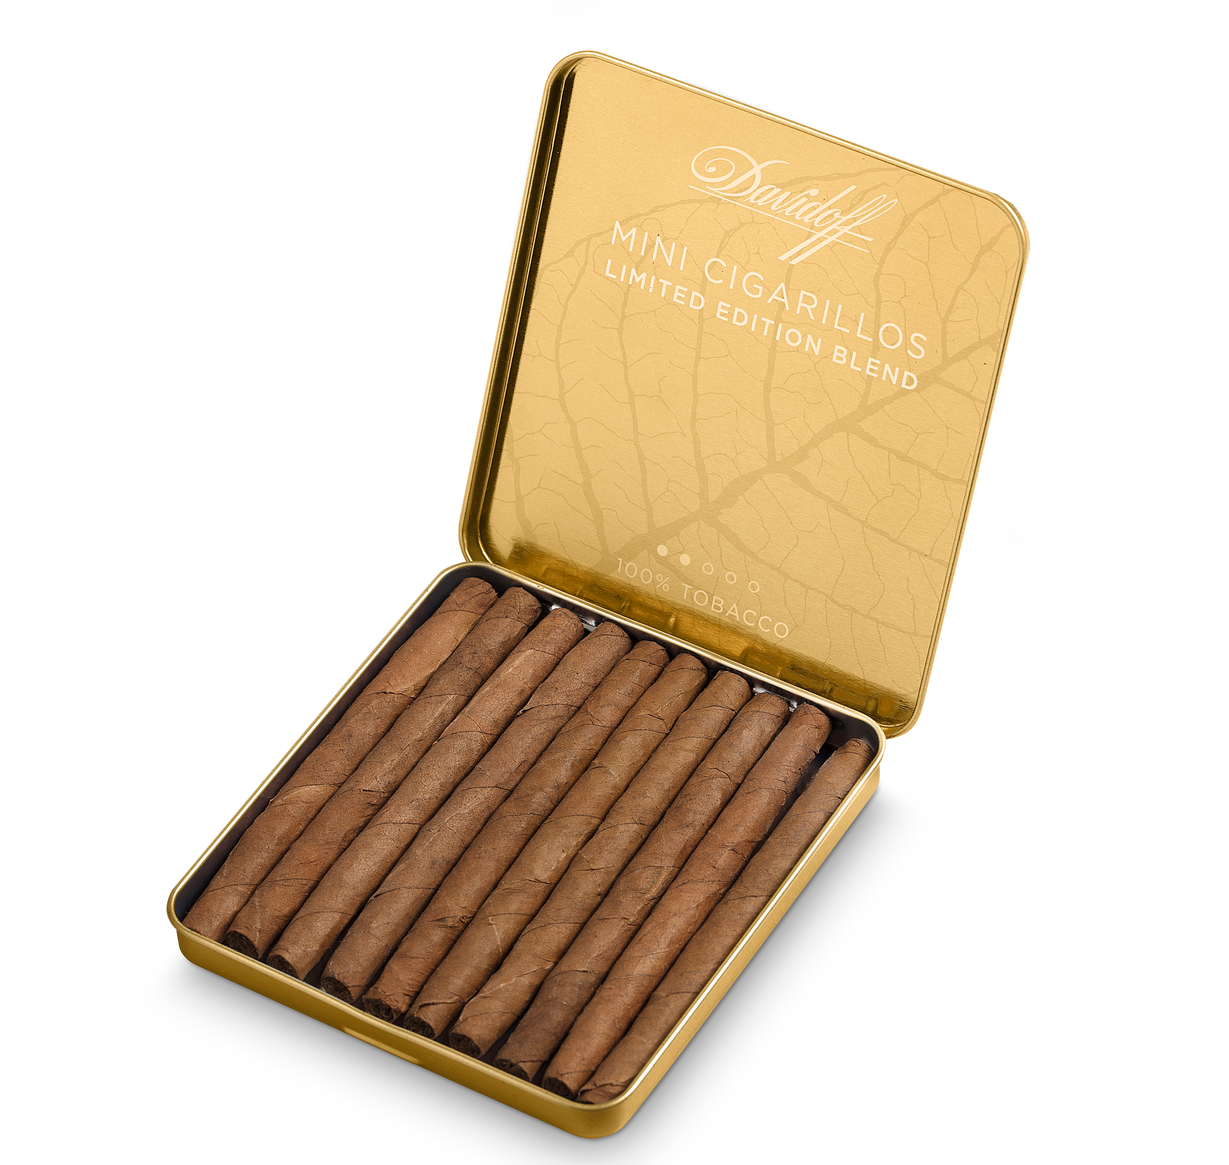 Davidoff_Golden_Leaf_Cigarillos_Limited_Edition_Open